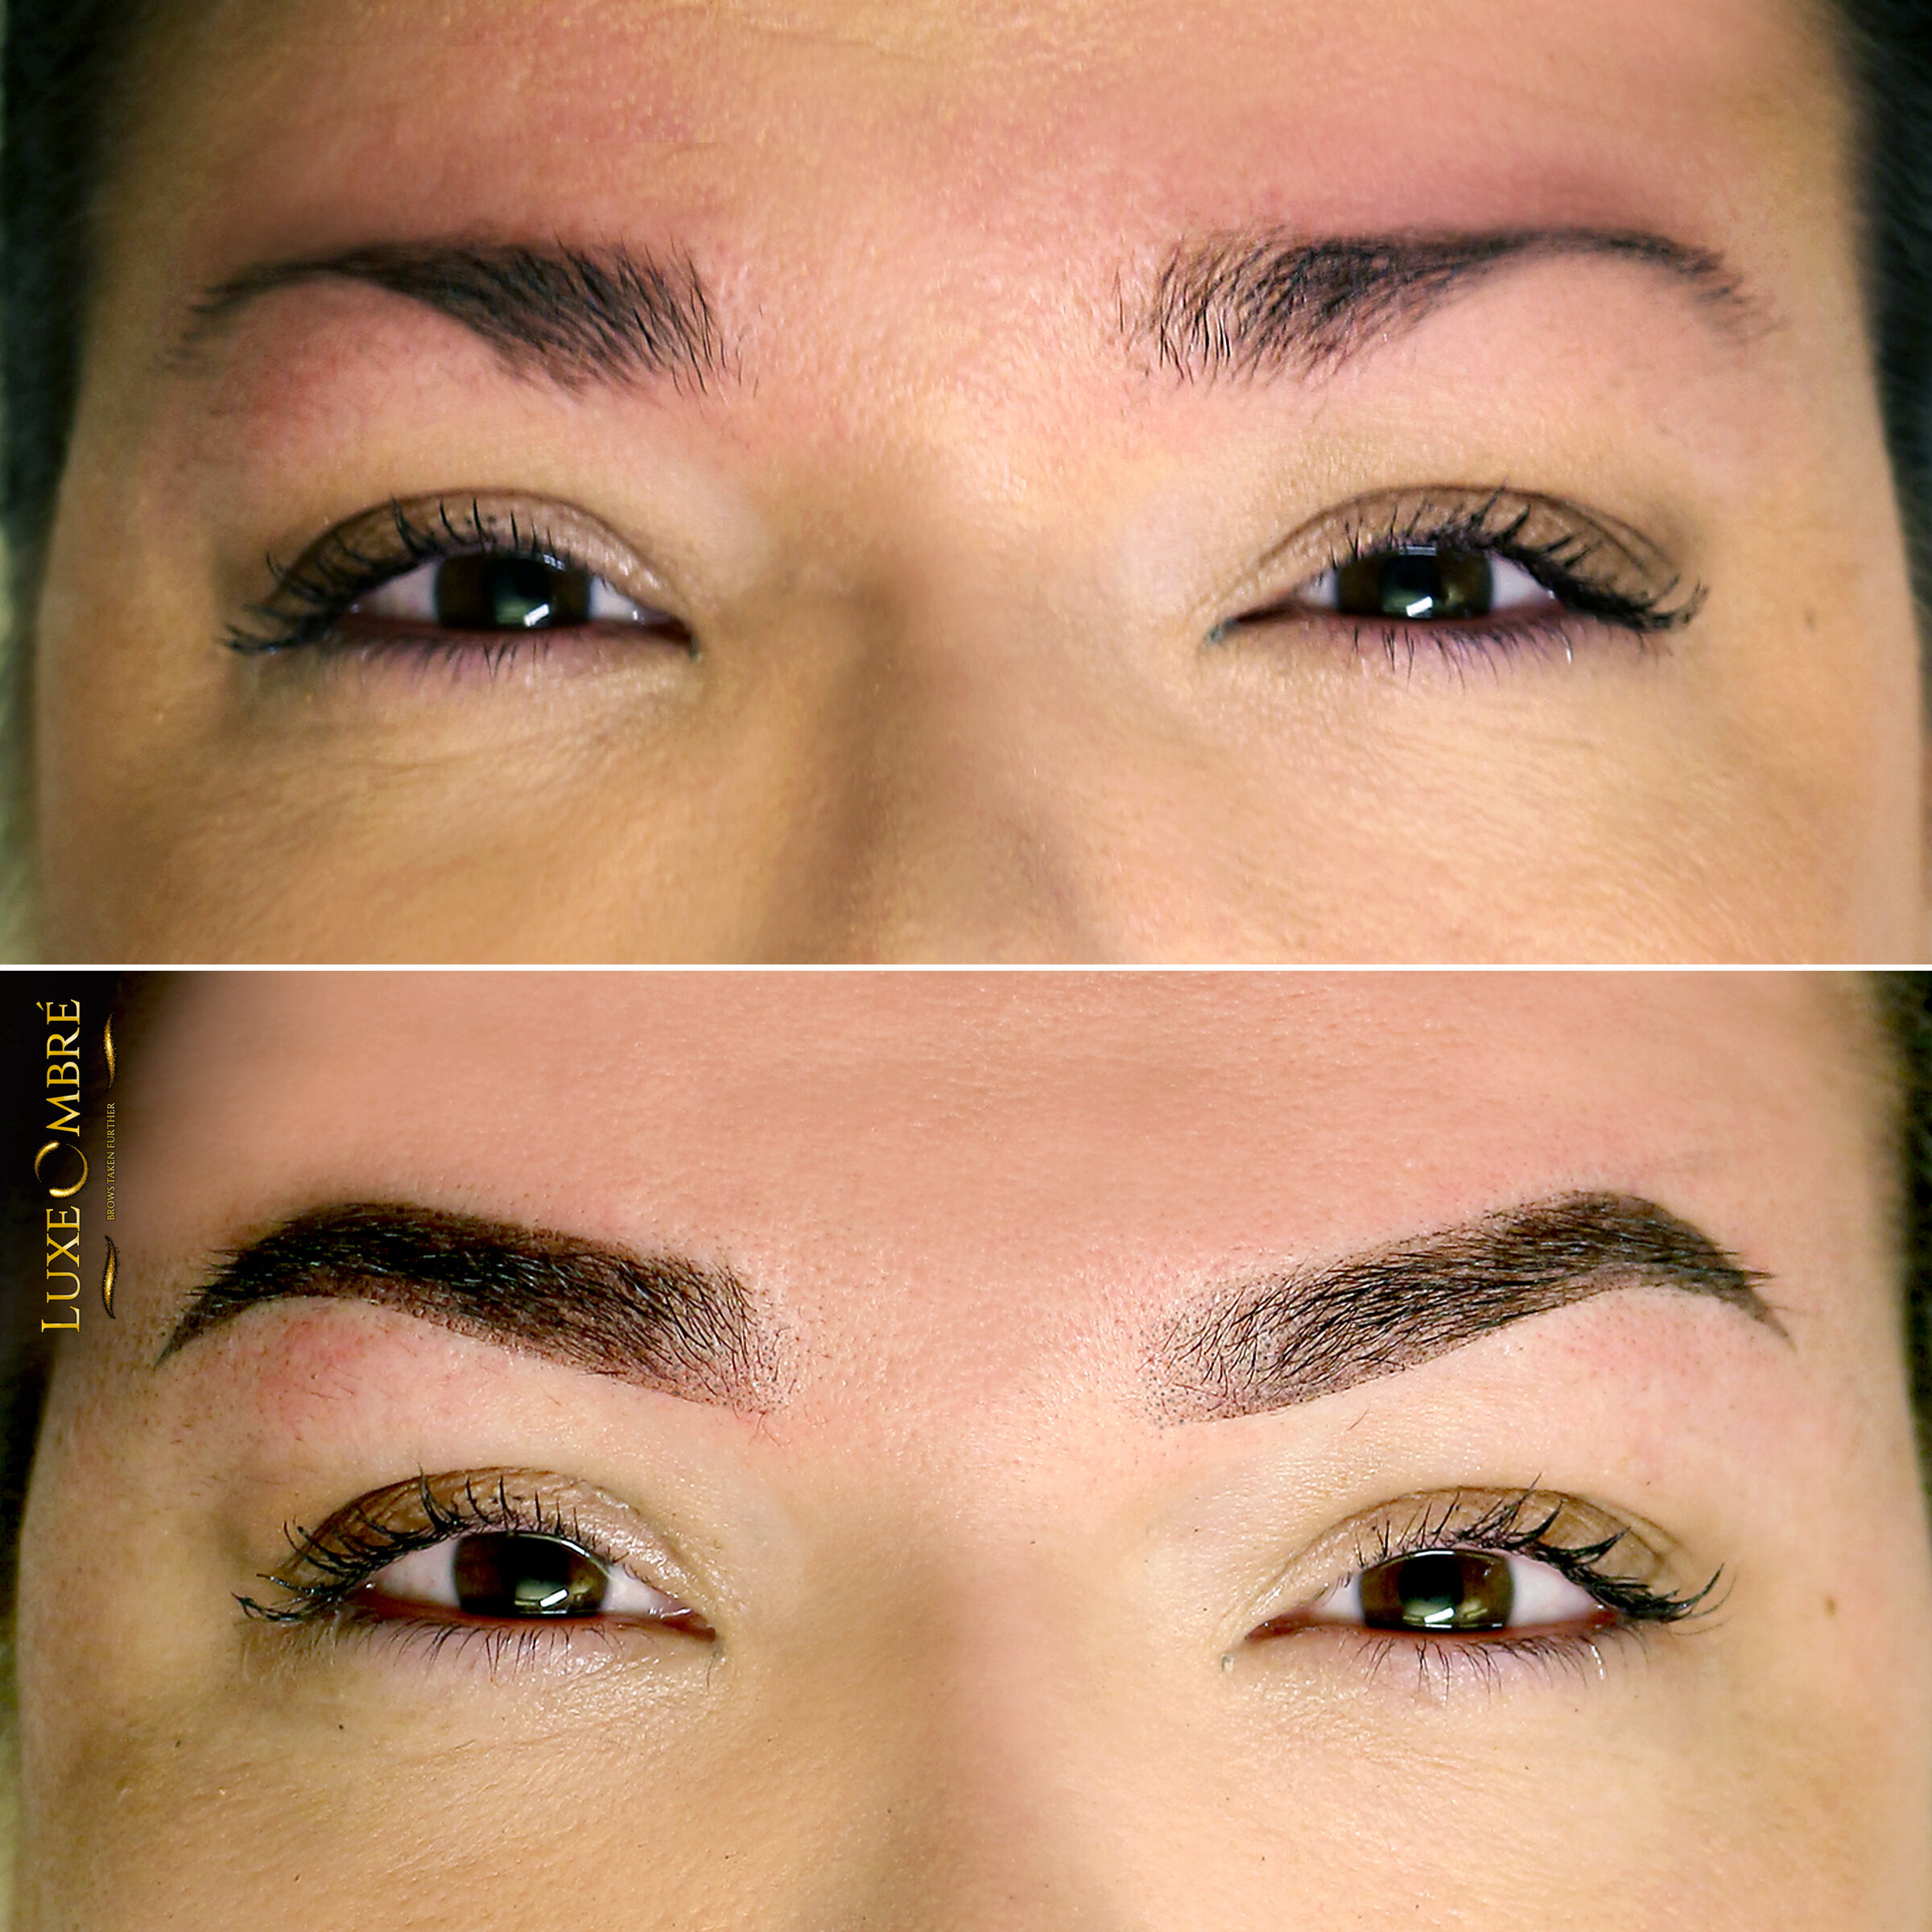 Excellent transformation to a very beautiful eyes.